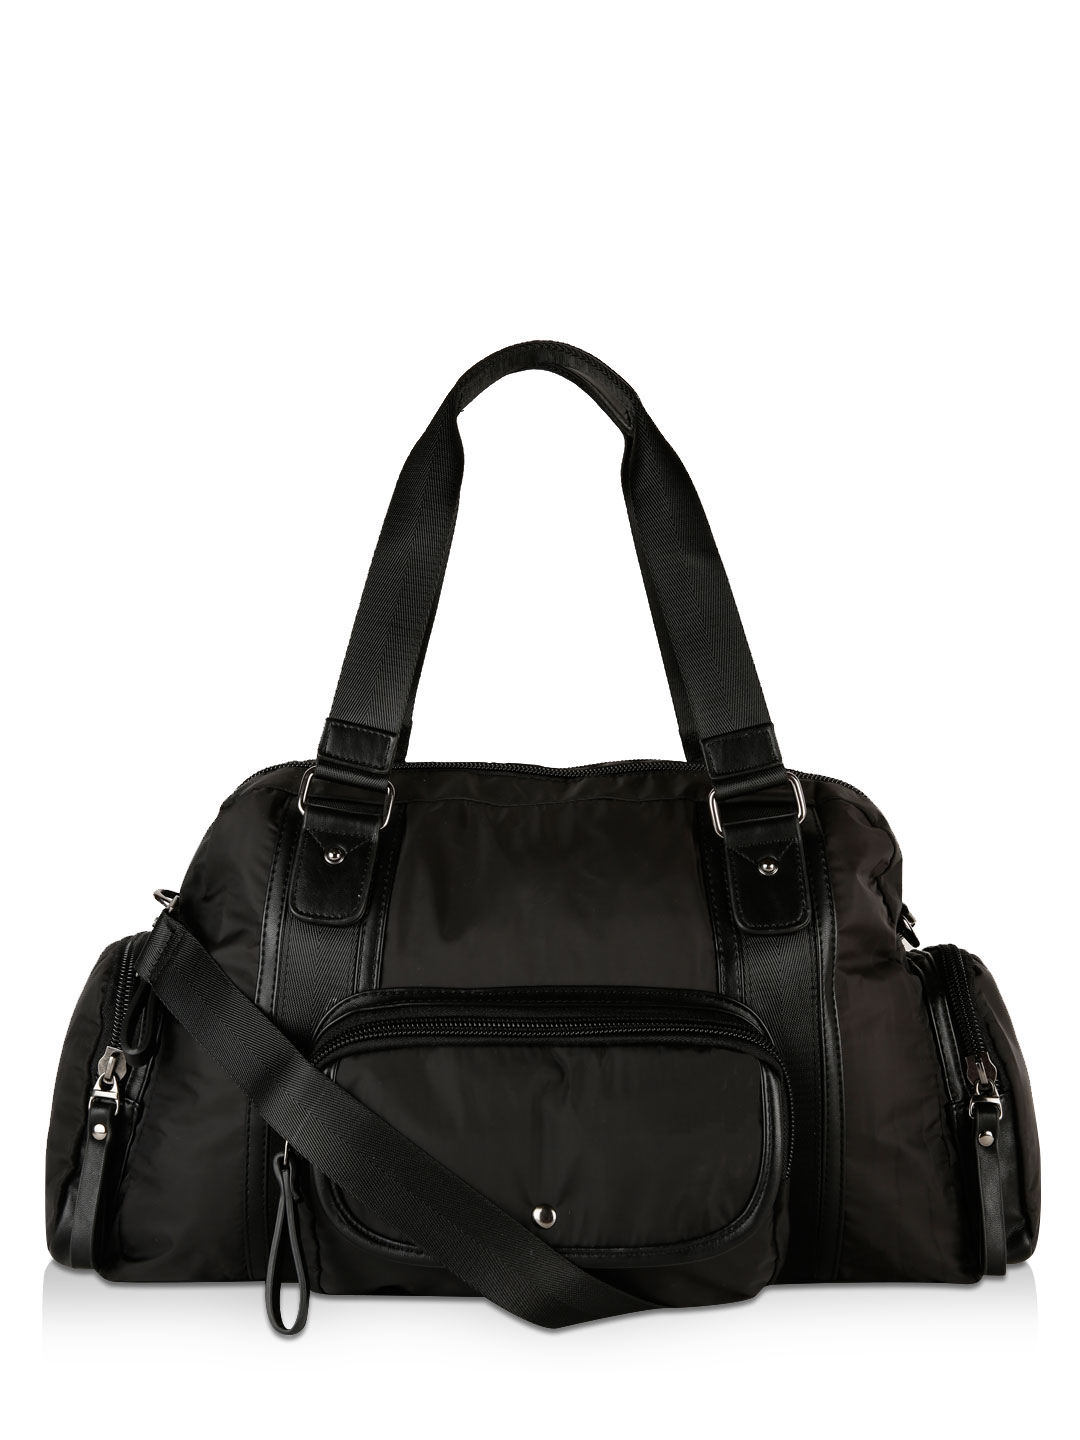 Voi Jeans Black Holdall Bag 1